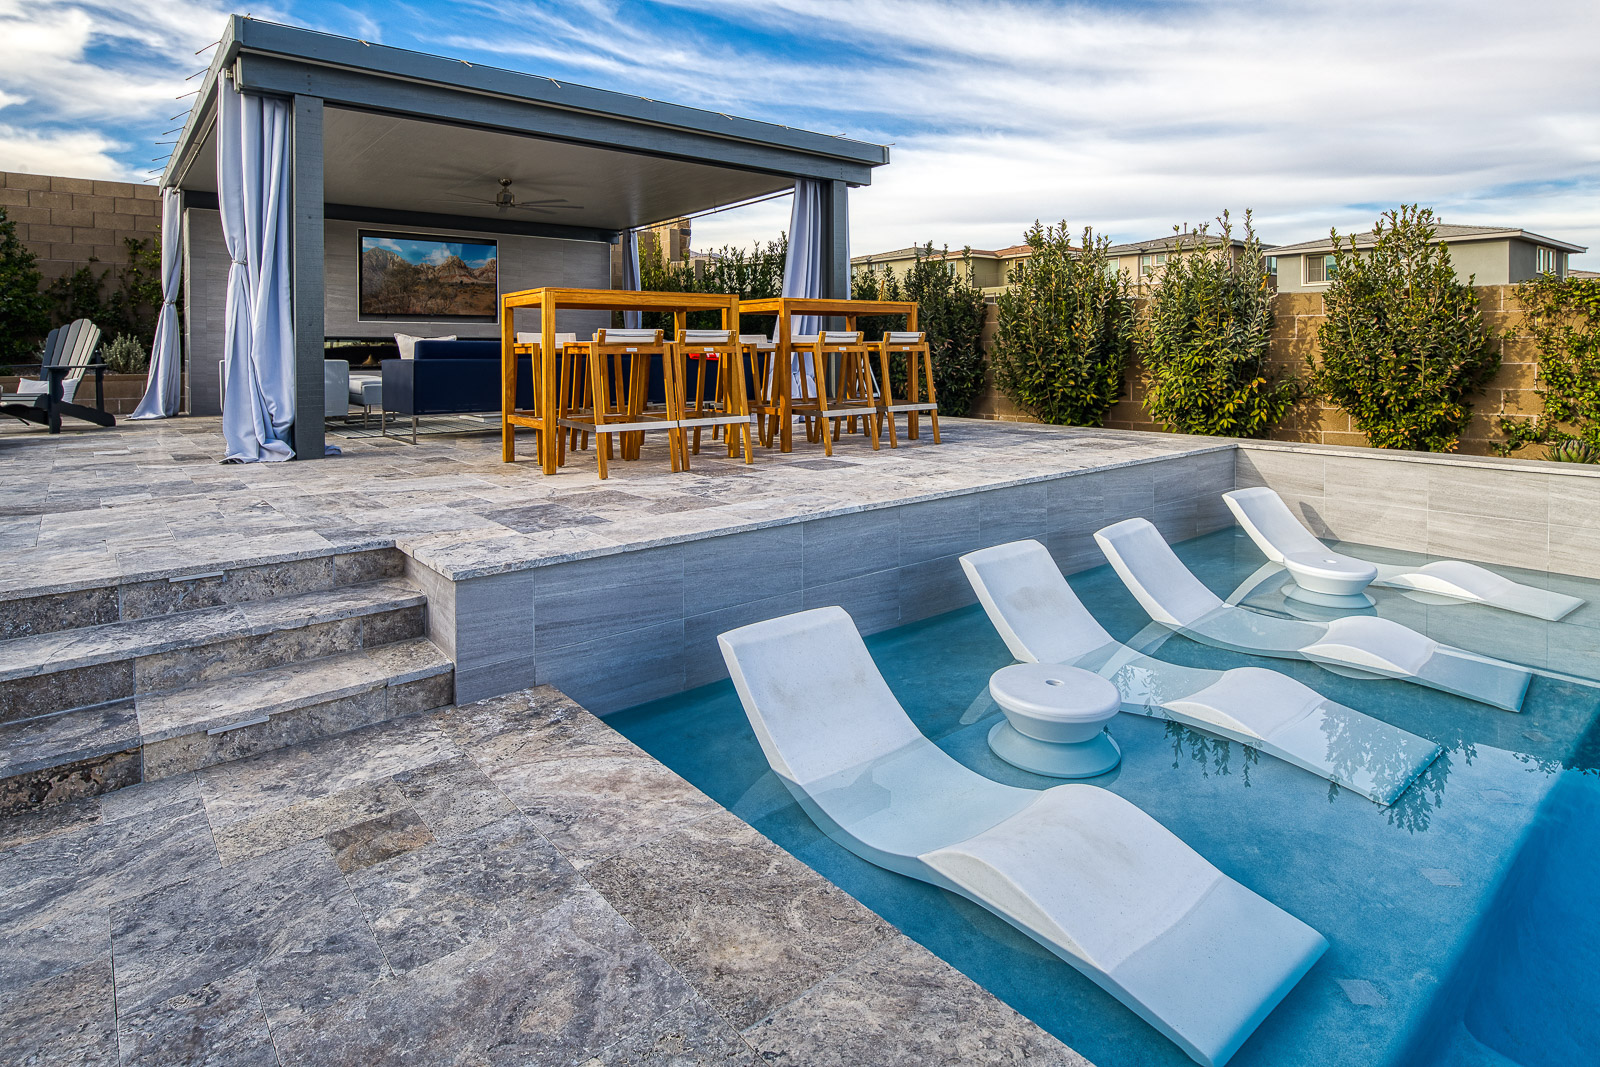 Outdoor Living Photo Gallery - Southern Vegas Valley Contracting